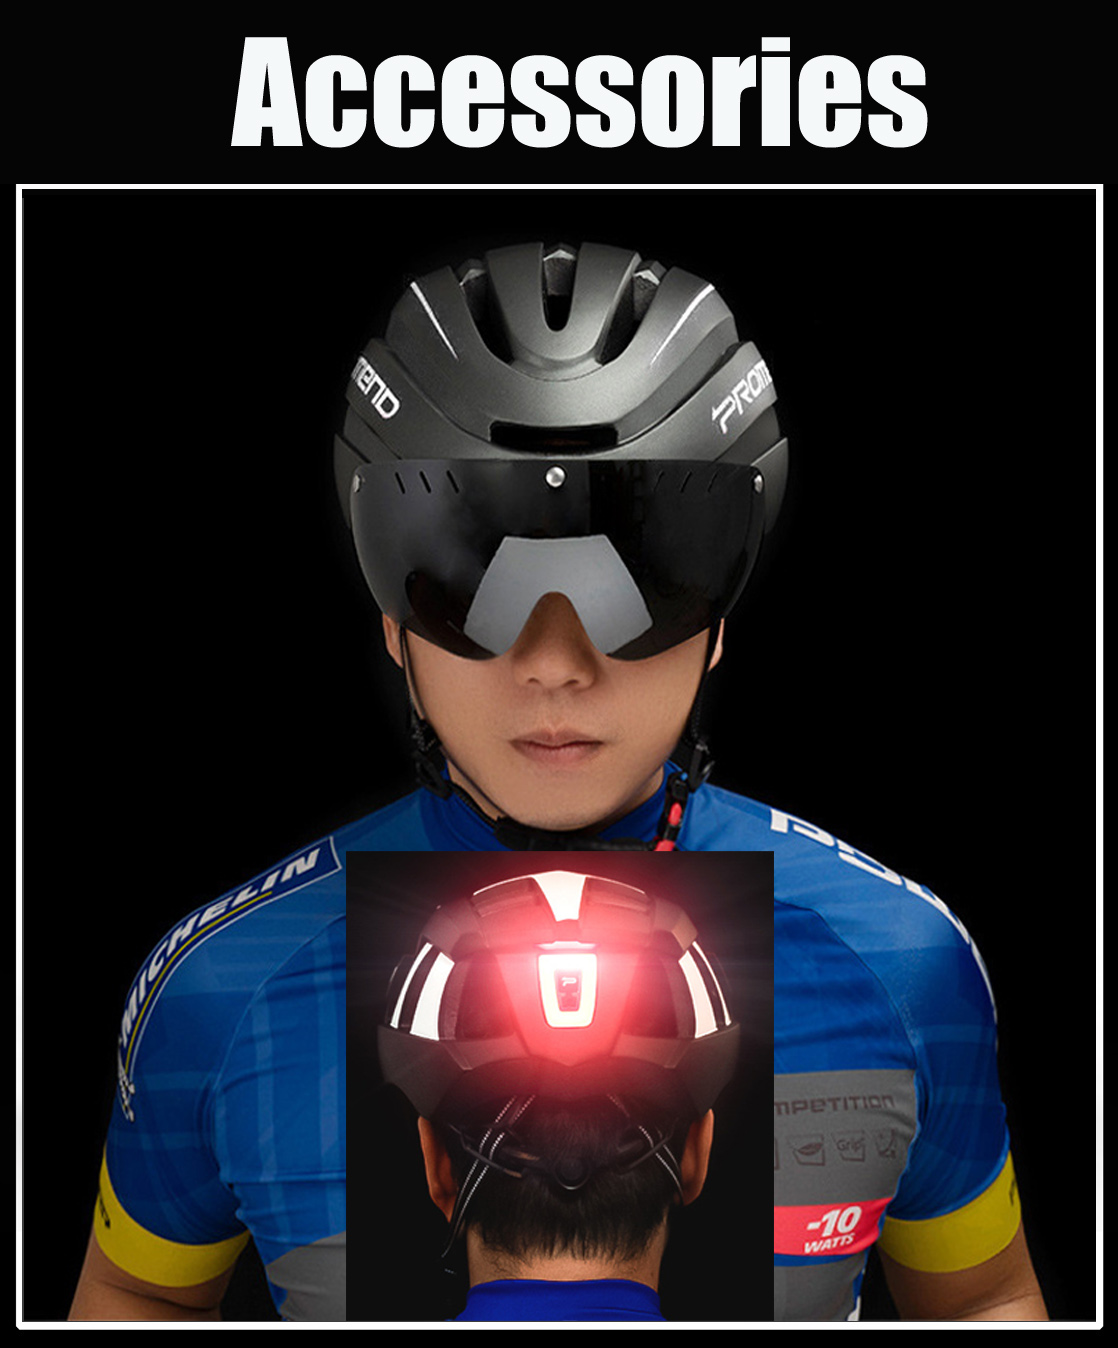 electric scooter bicycle helmet